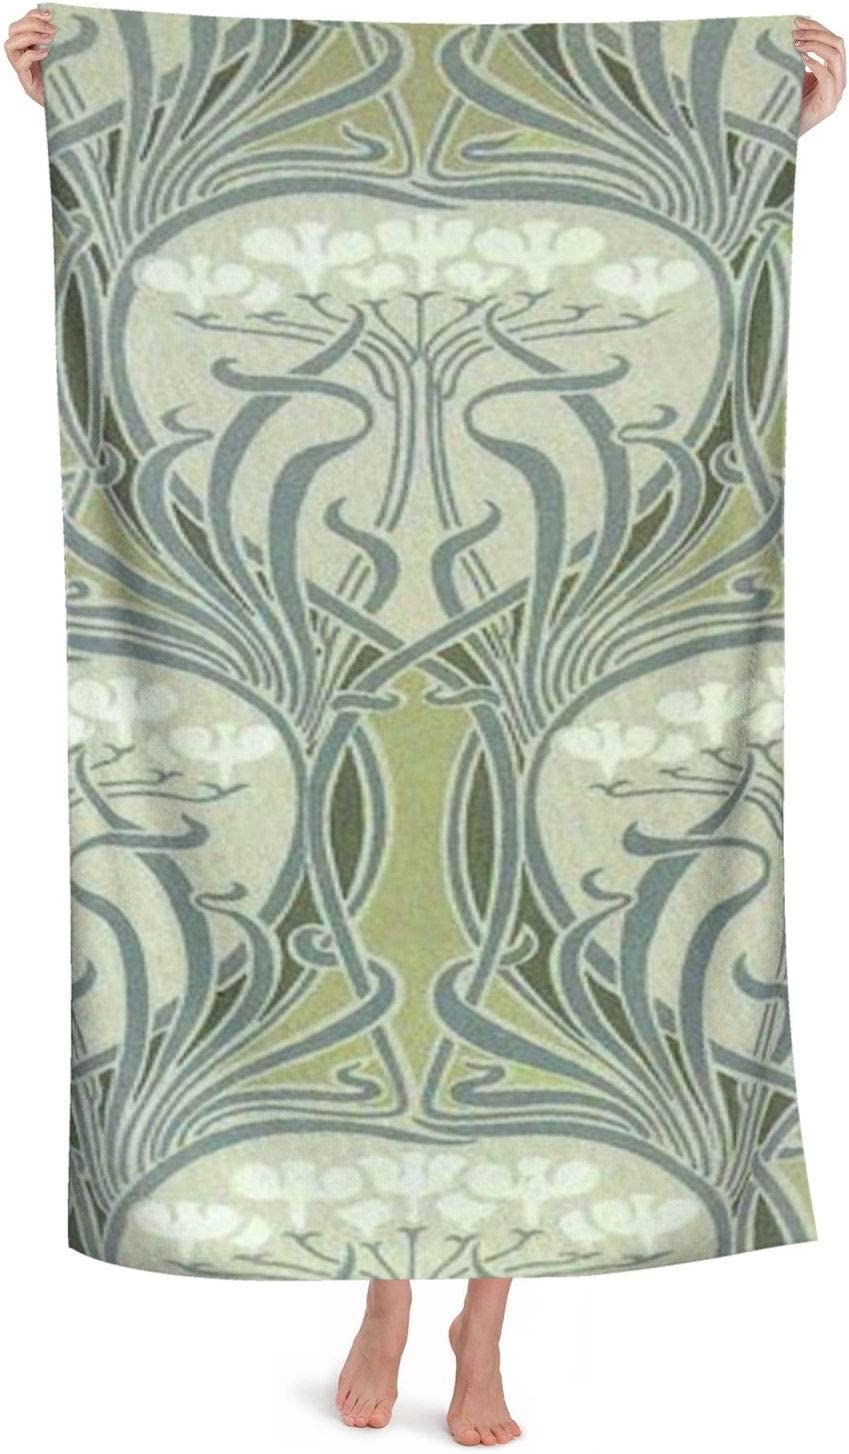 Bath Towels,Art Nouveau Decor Bath Sheet-Quick Dry,Highly Absorbent,Soft Feel Towels,Perfect for Daily Use 130x80cm